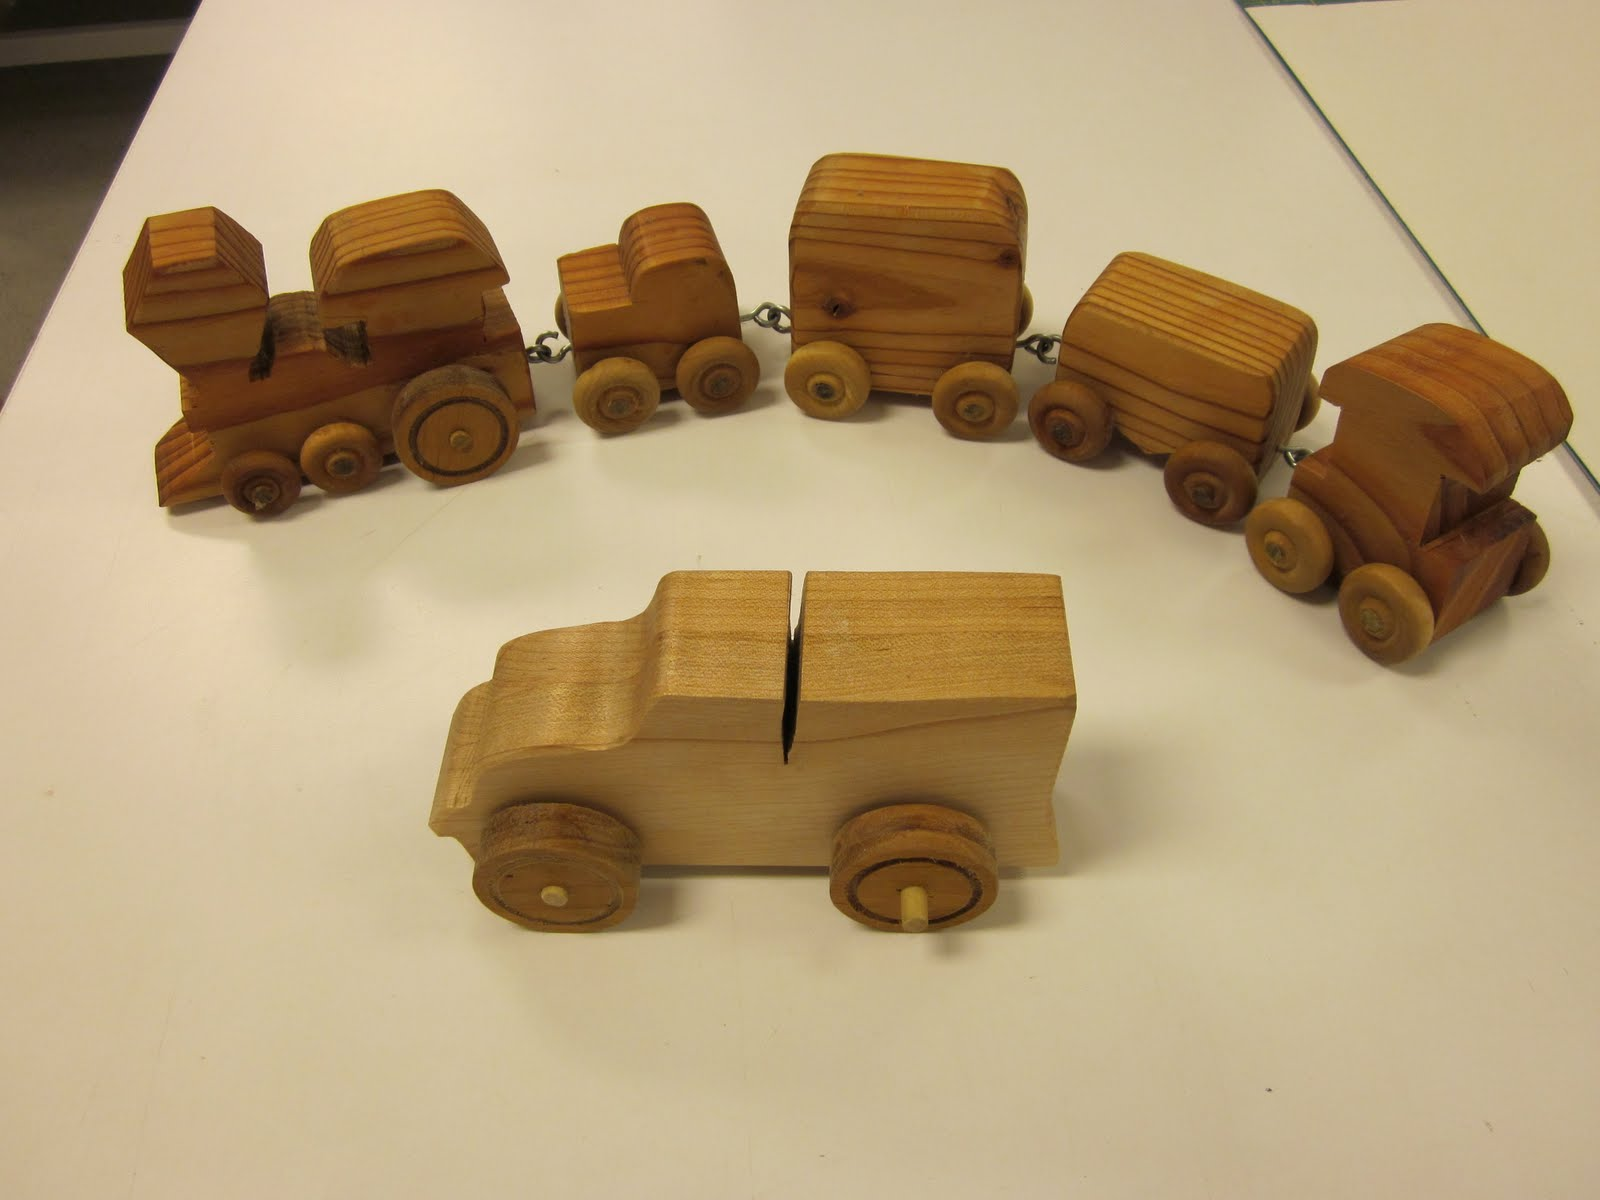 ... of various wooden toys some were simple blocks and others were